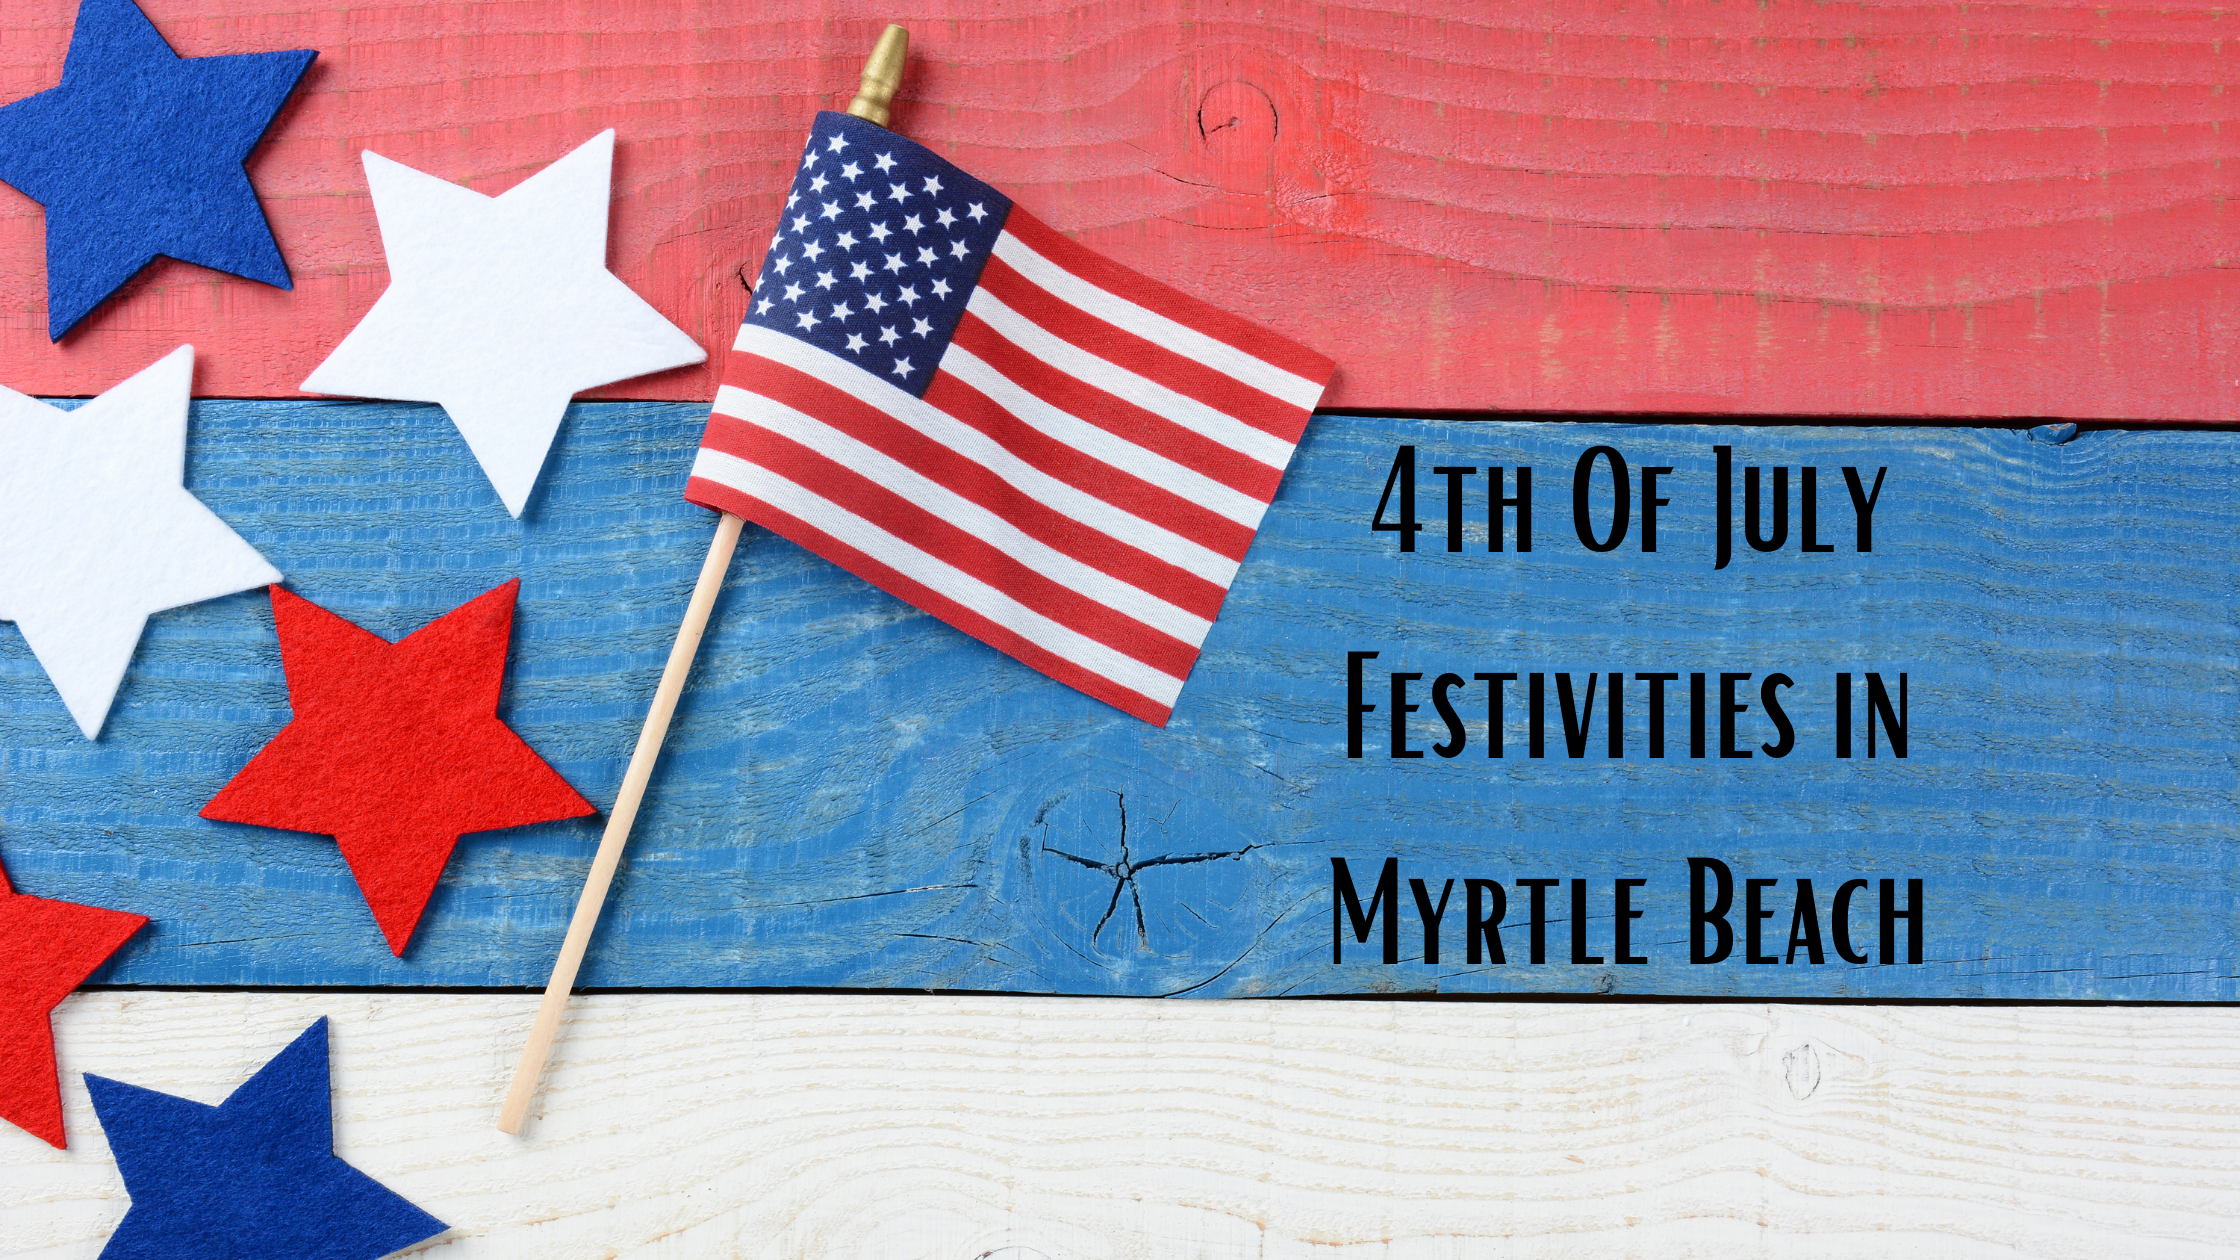 4th of July in Myrtle Beach